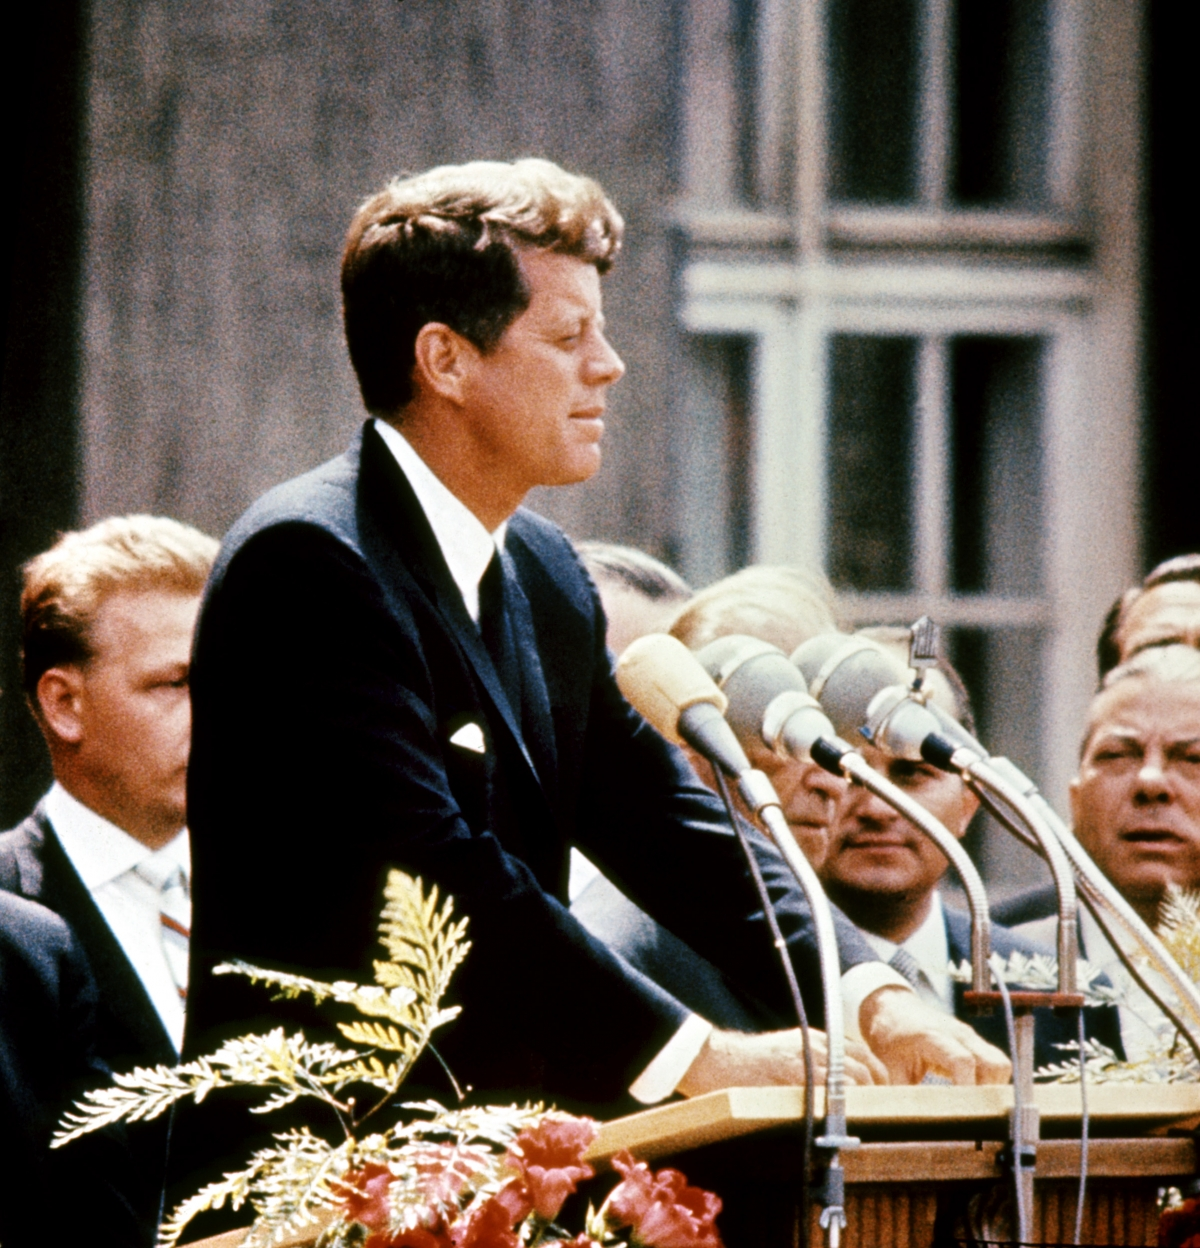 the life and legacy of the president john f kennedy 1917 1963 Legacy of a president, antología de john f kennedy  reflections on leading an inspired life, john f kennedy,  president john f kennedy,.